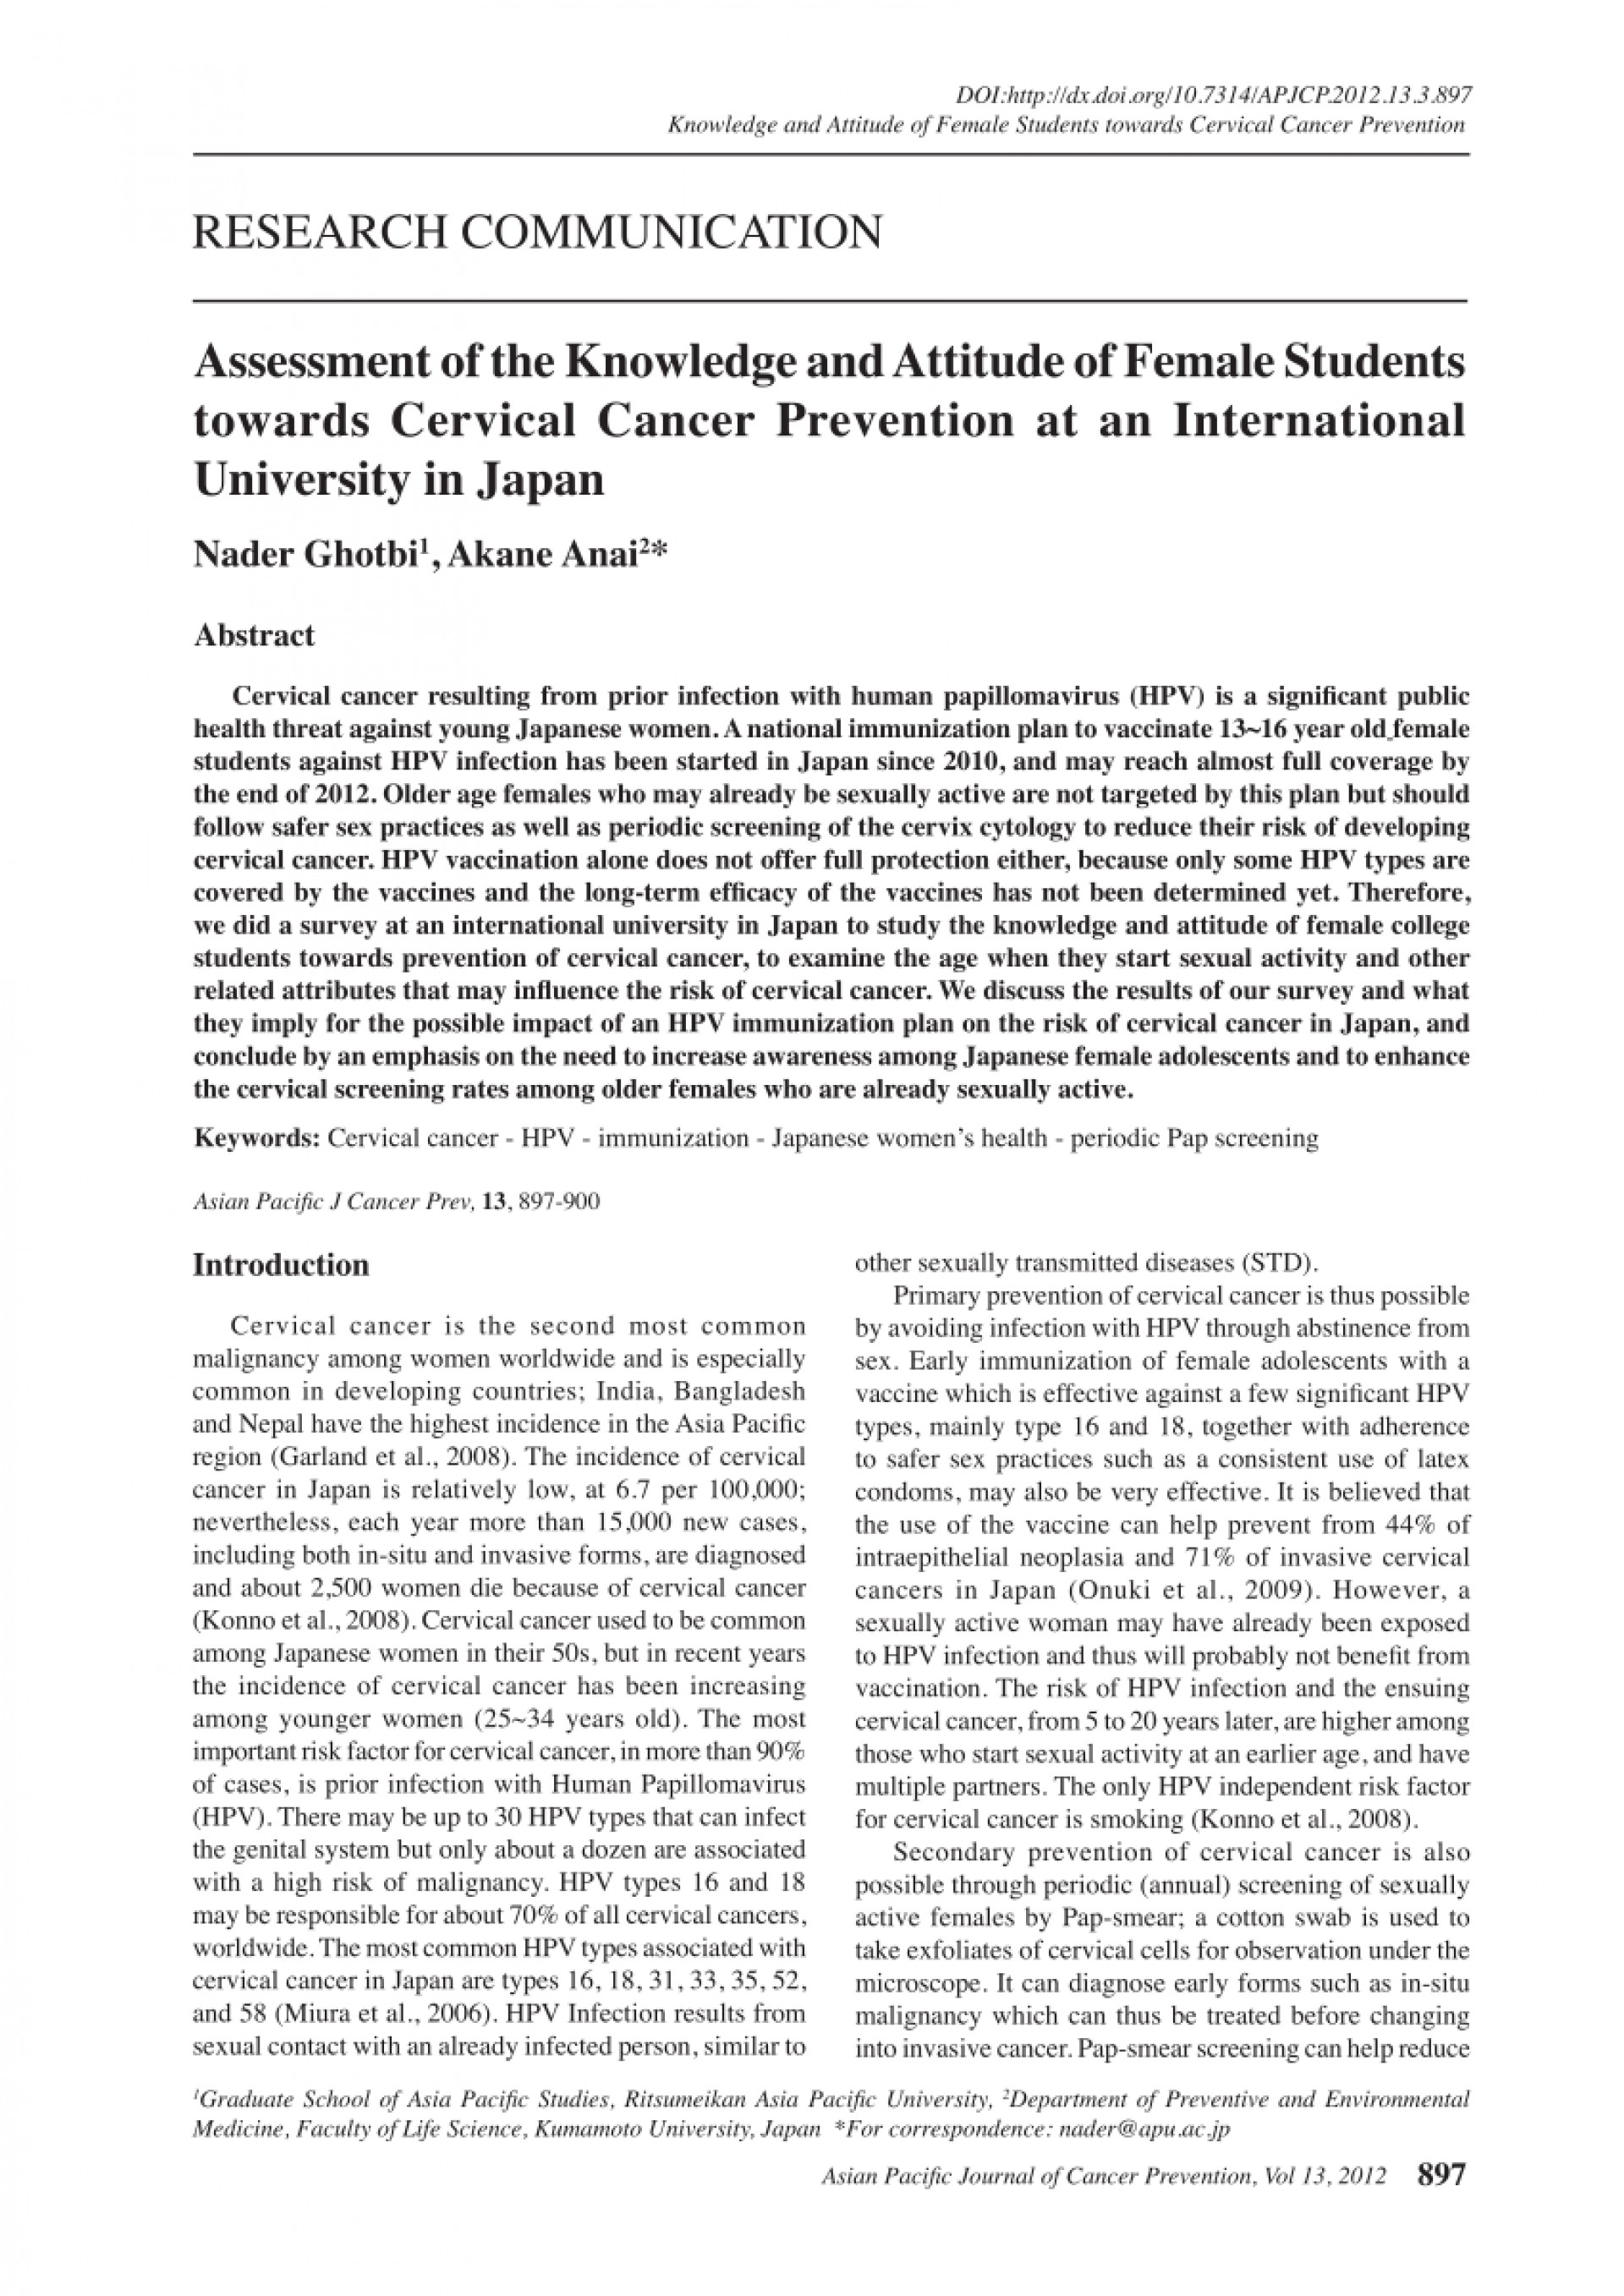 008 Cervical Cancer Research Papers Essay Top In Hindi Questions Titles 1920